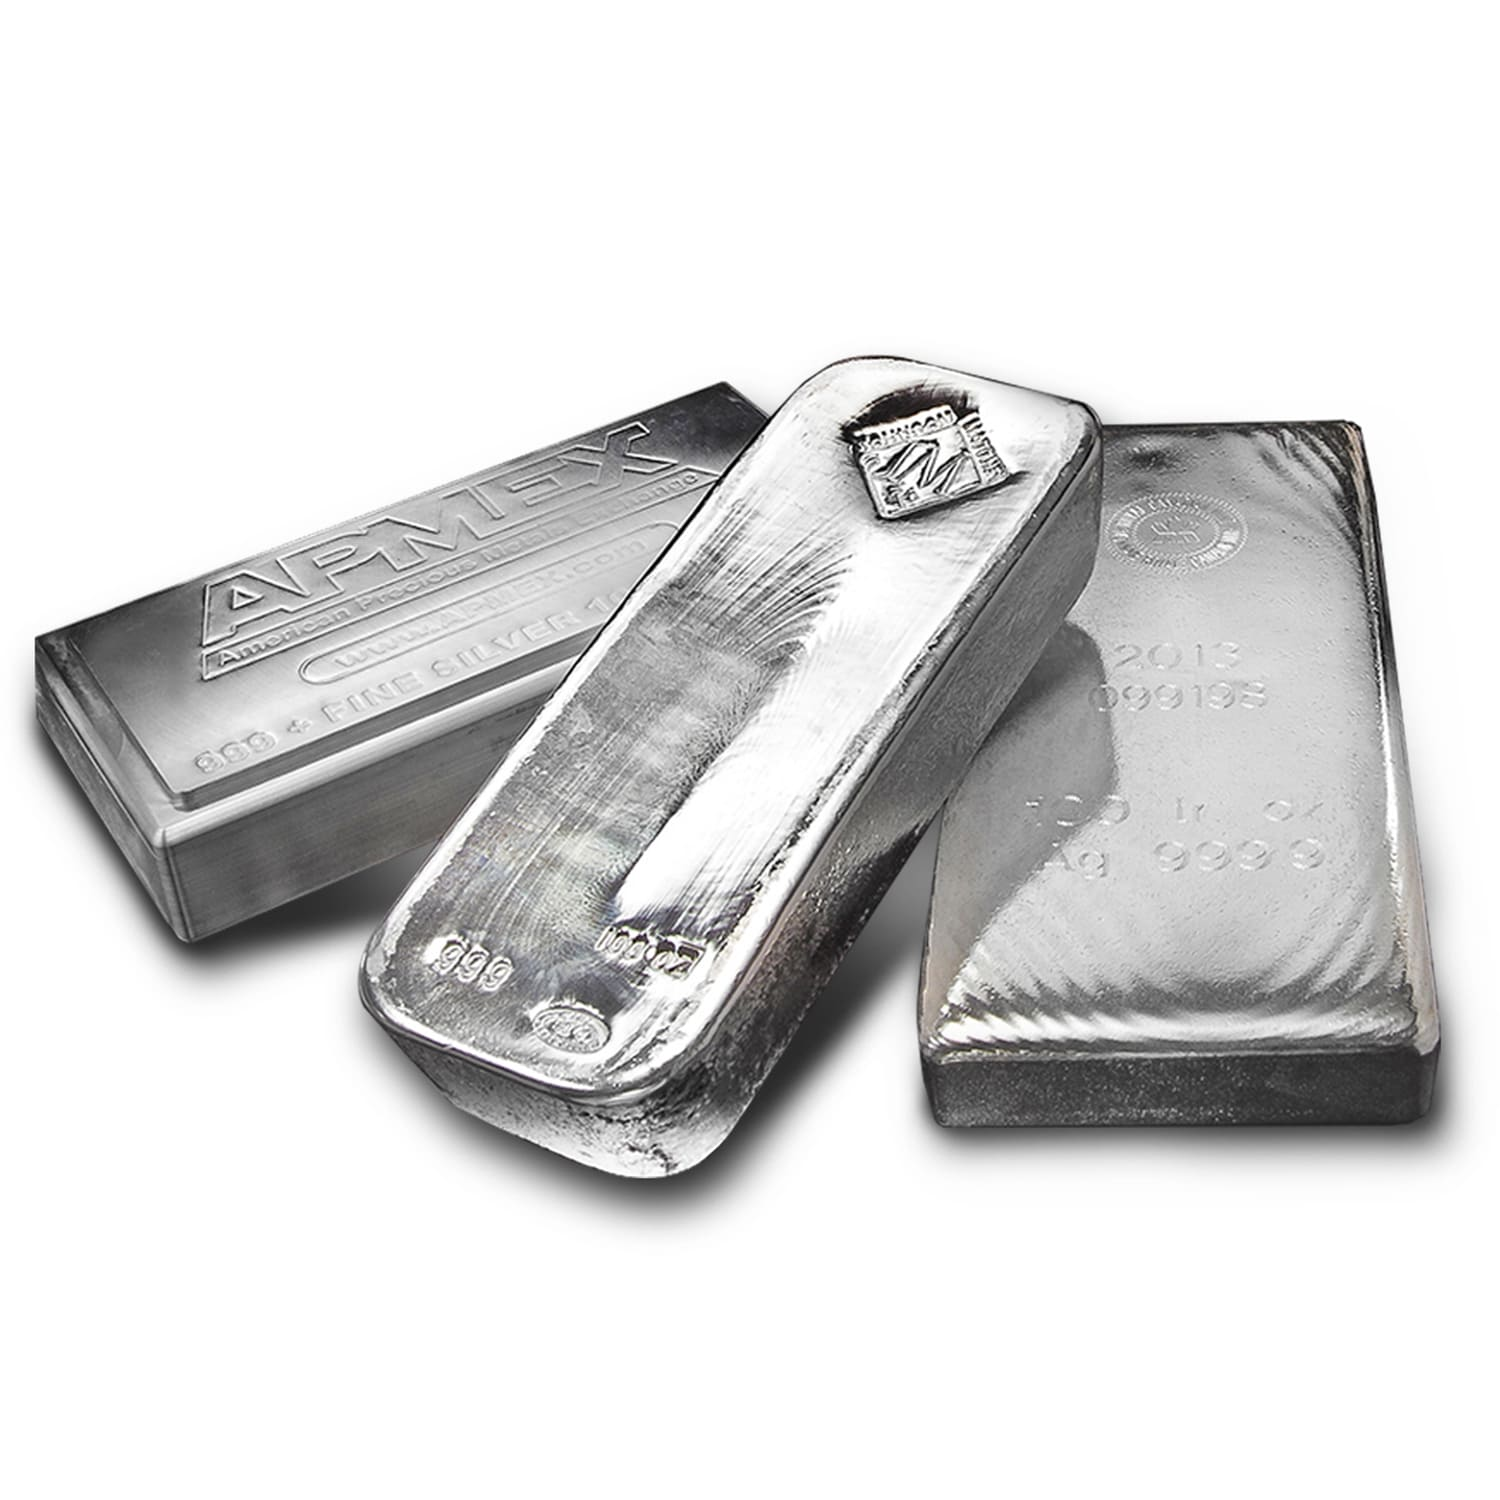 103.10 oz Silver Bar - Secondary Market